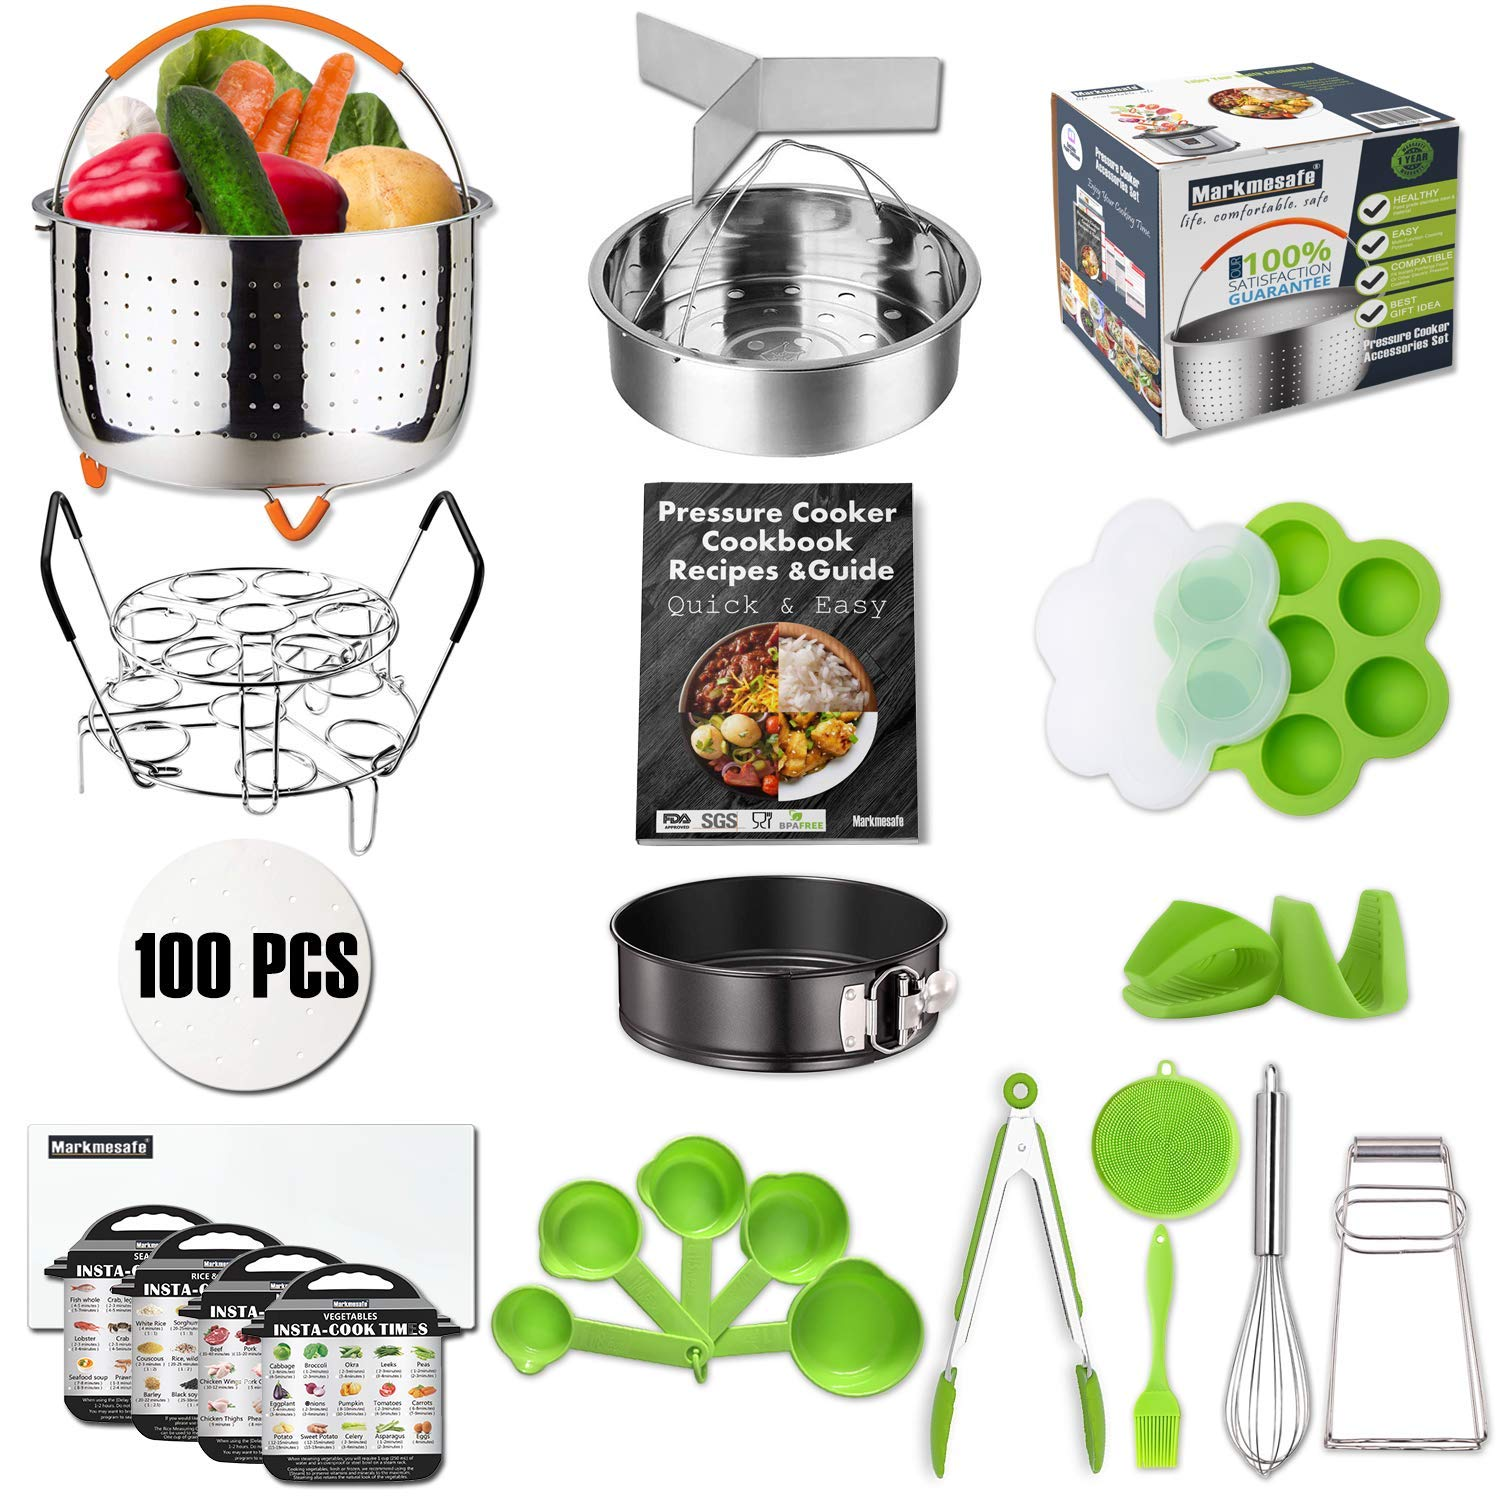 For Instant Pot Pressure Cooker Accessories Set Fit 6,8 QT, Steamer Basket, Recipes Cookbook, Egg Bites Mold, Springform Pan,Stackable Egg Steamer Rack,5 Cooking time Magnets,Balloon Whisk And More